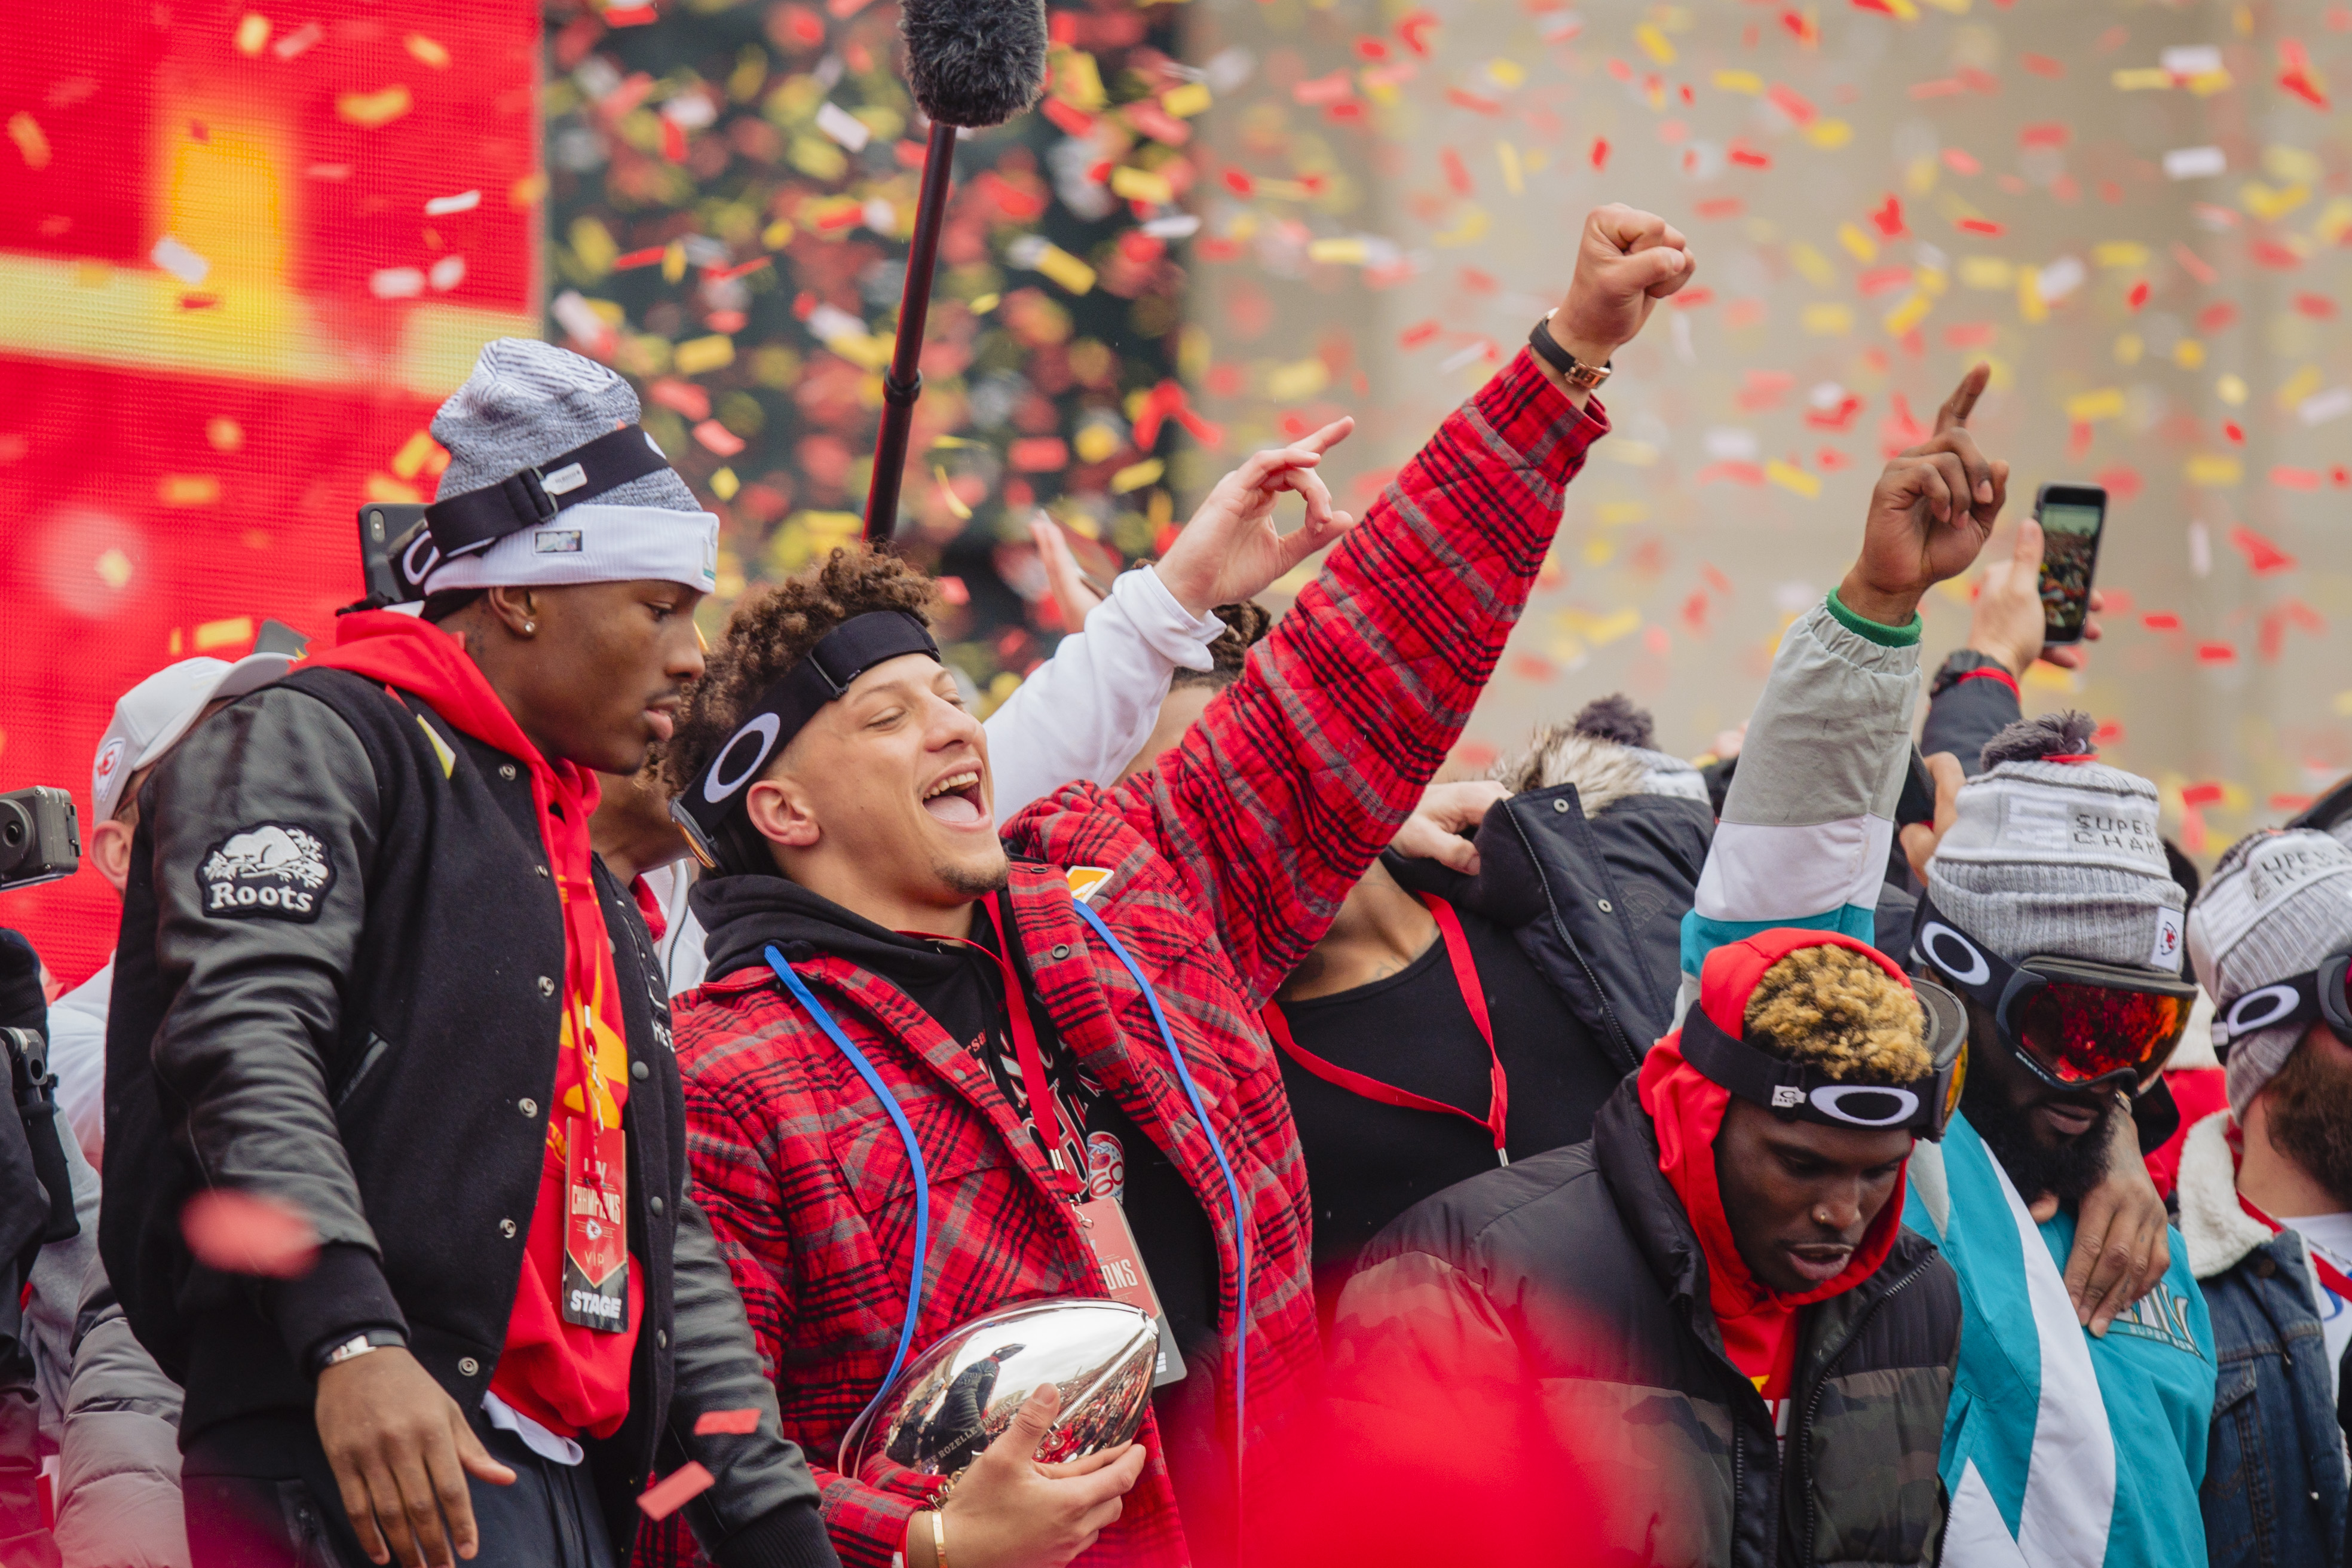 Patrick Mahomes #15 of the Kansas City Chiefs celebrates with the Super Bowl MVP trophy during the Kansas City Chiefs Victory Parade on February 5, 2020 in Kansas City, Missouri.